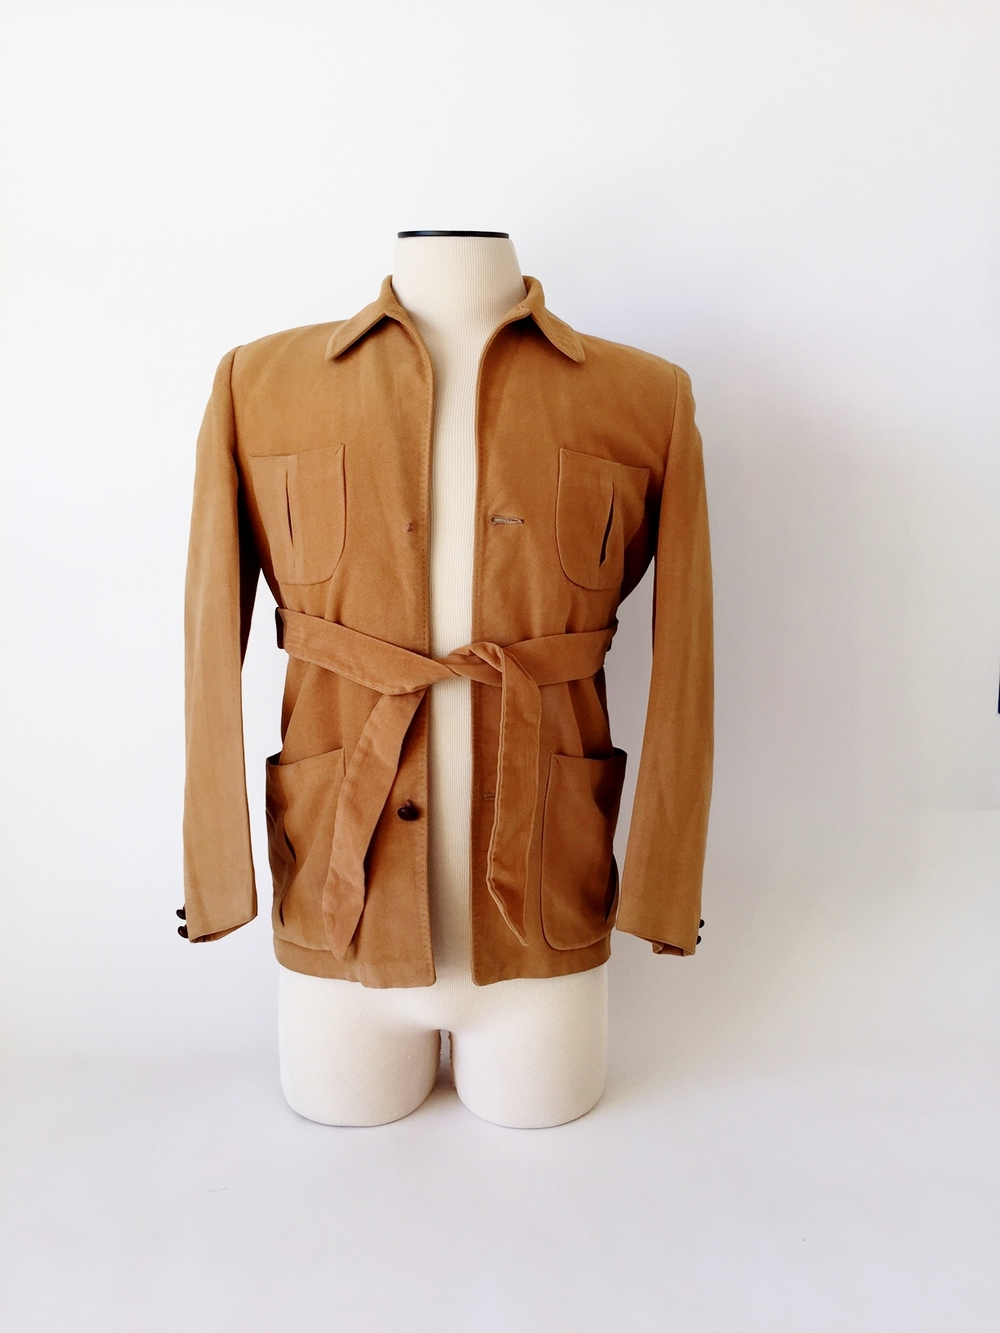 1940's belted leisure jacket with leather buttons